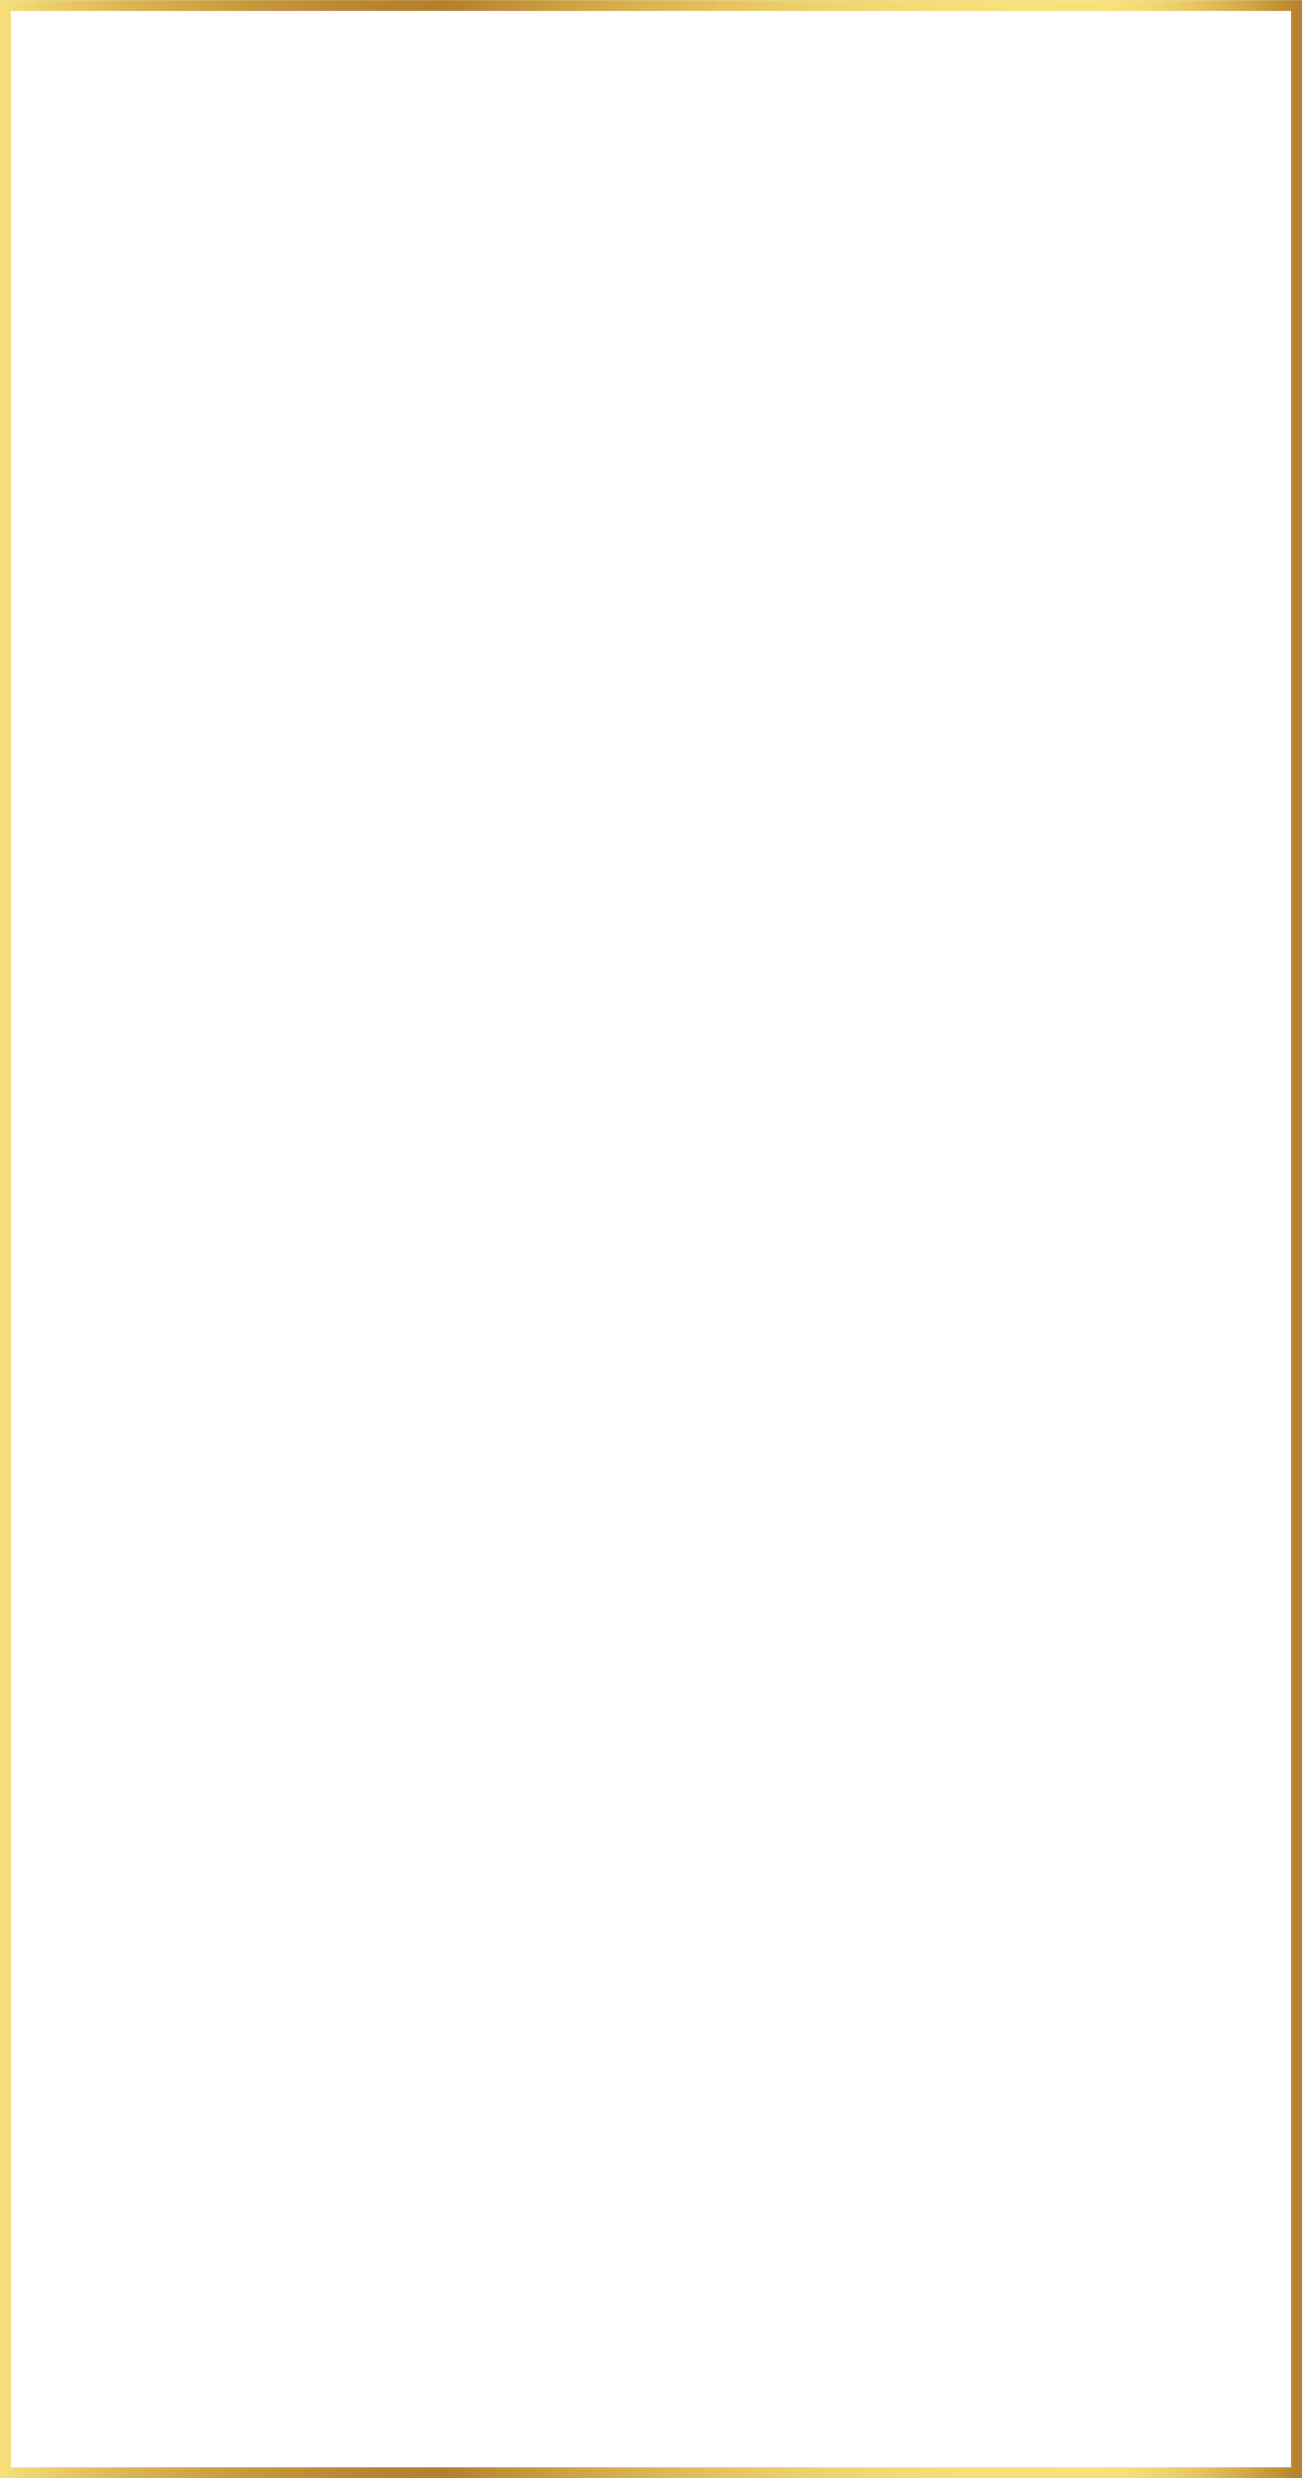 gold frame about-02.png